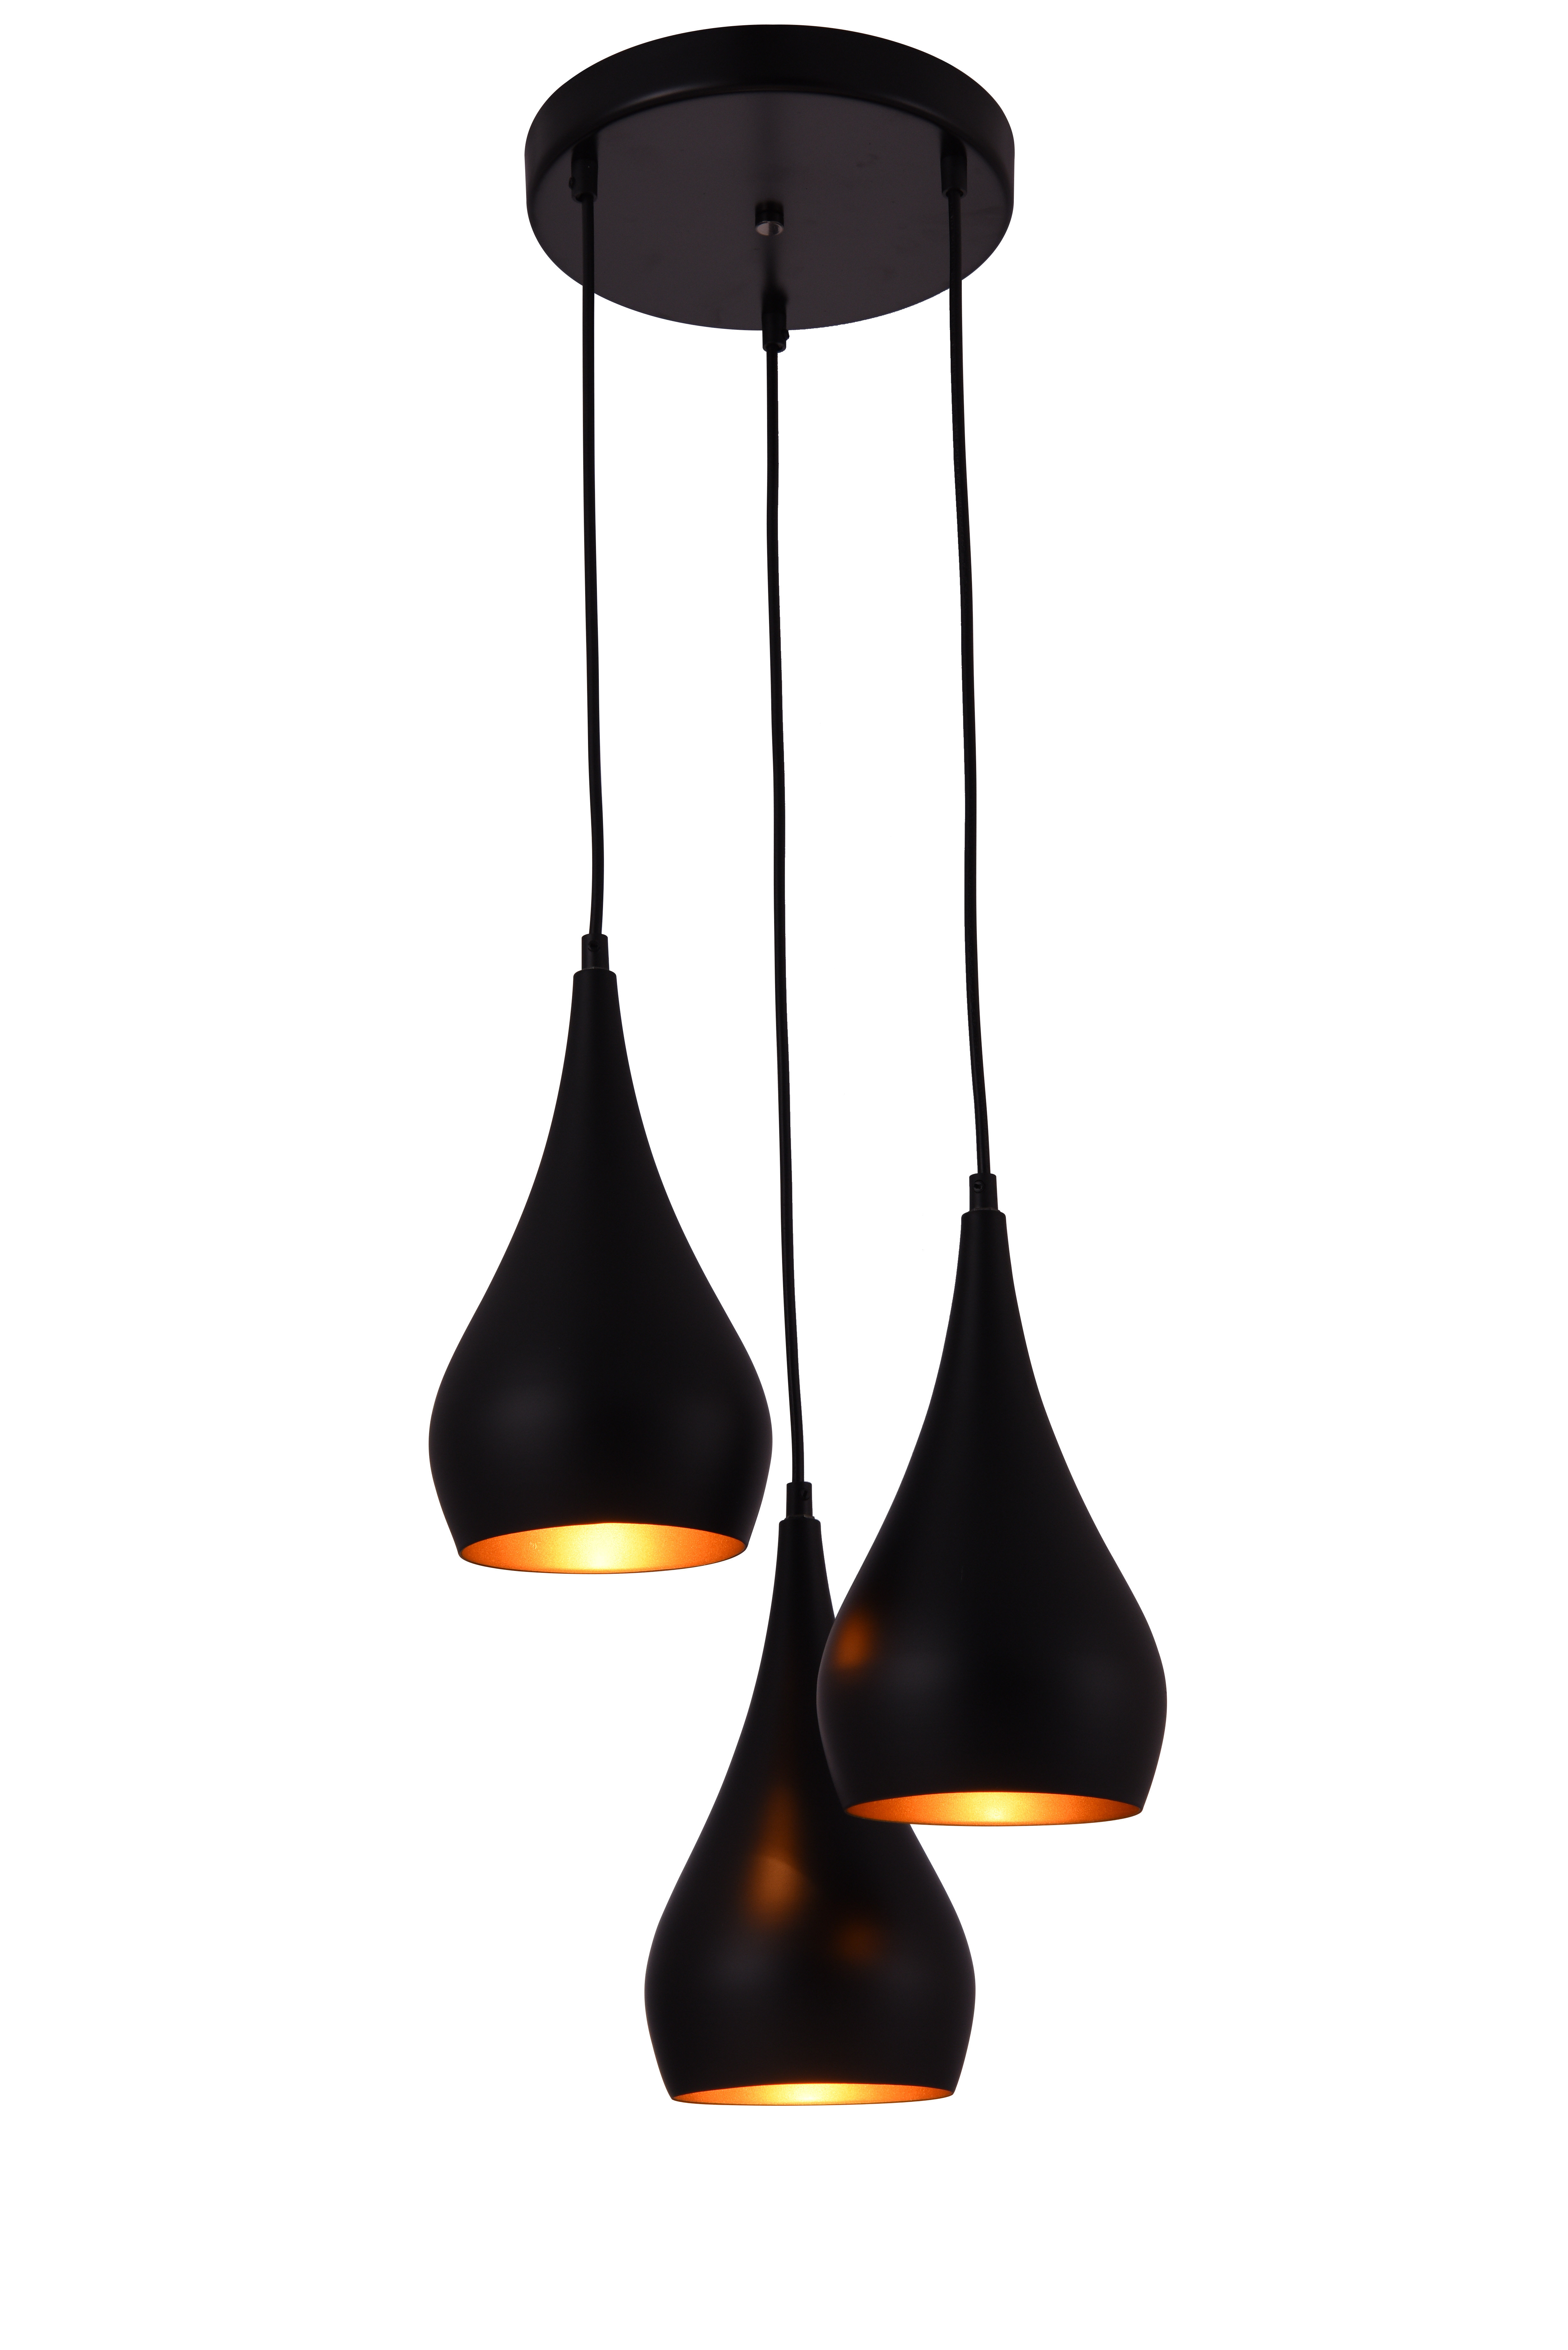 Zachery 5 Light Led Cluster Pendants Pertaining To Most Current Modern Cluster Pendant Lighting (View 17 of 20)